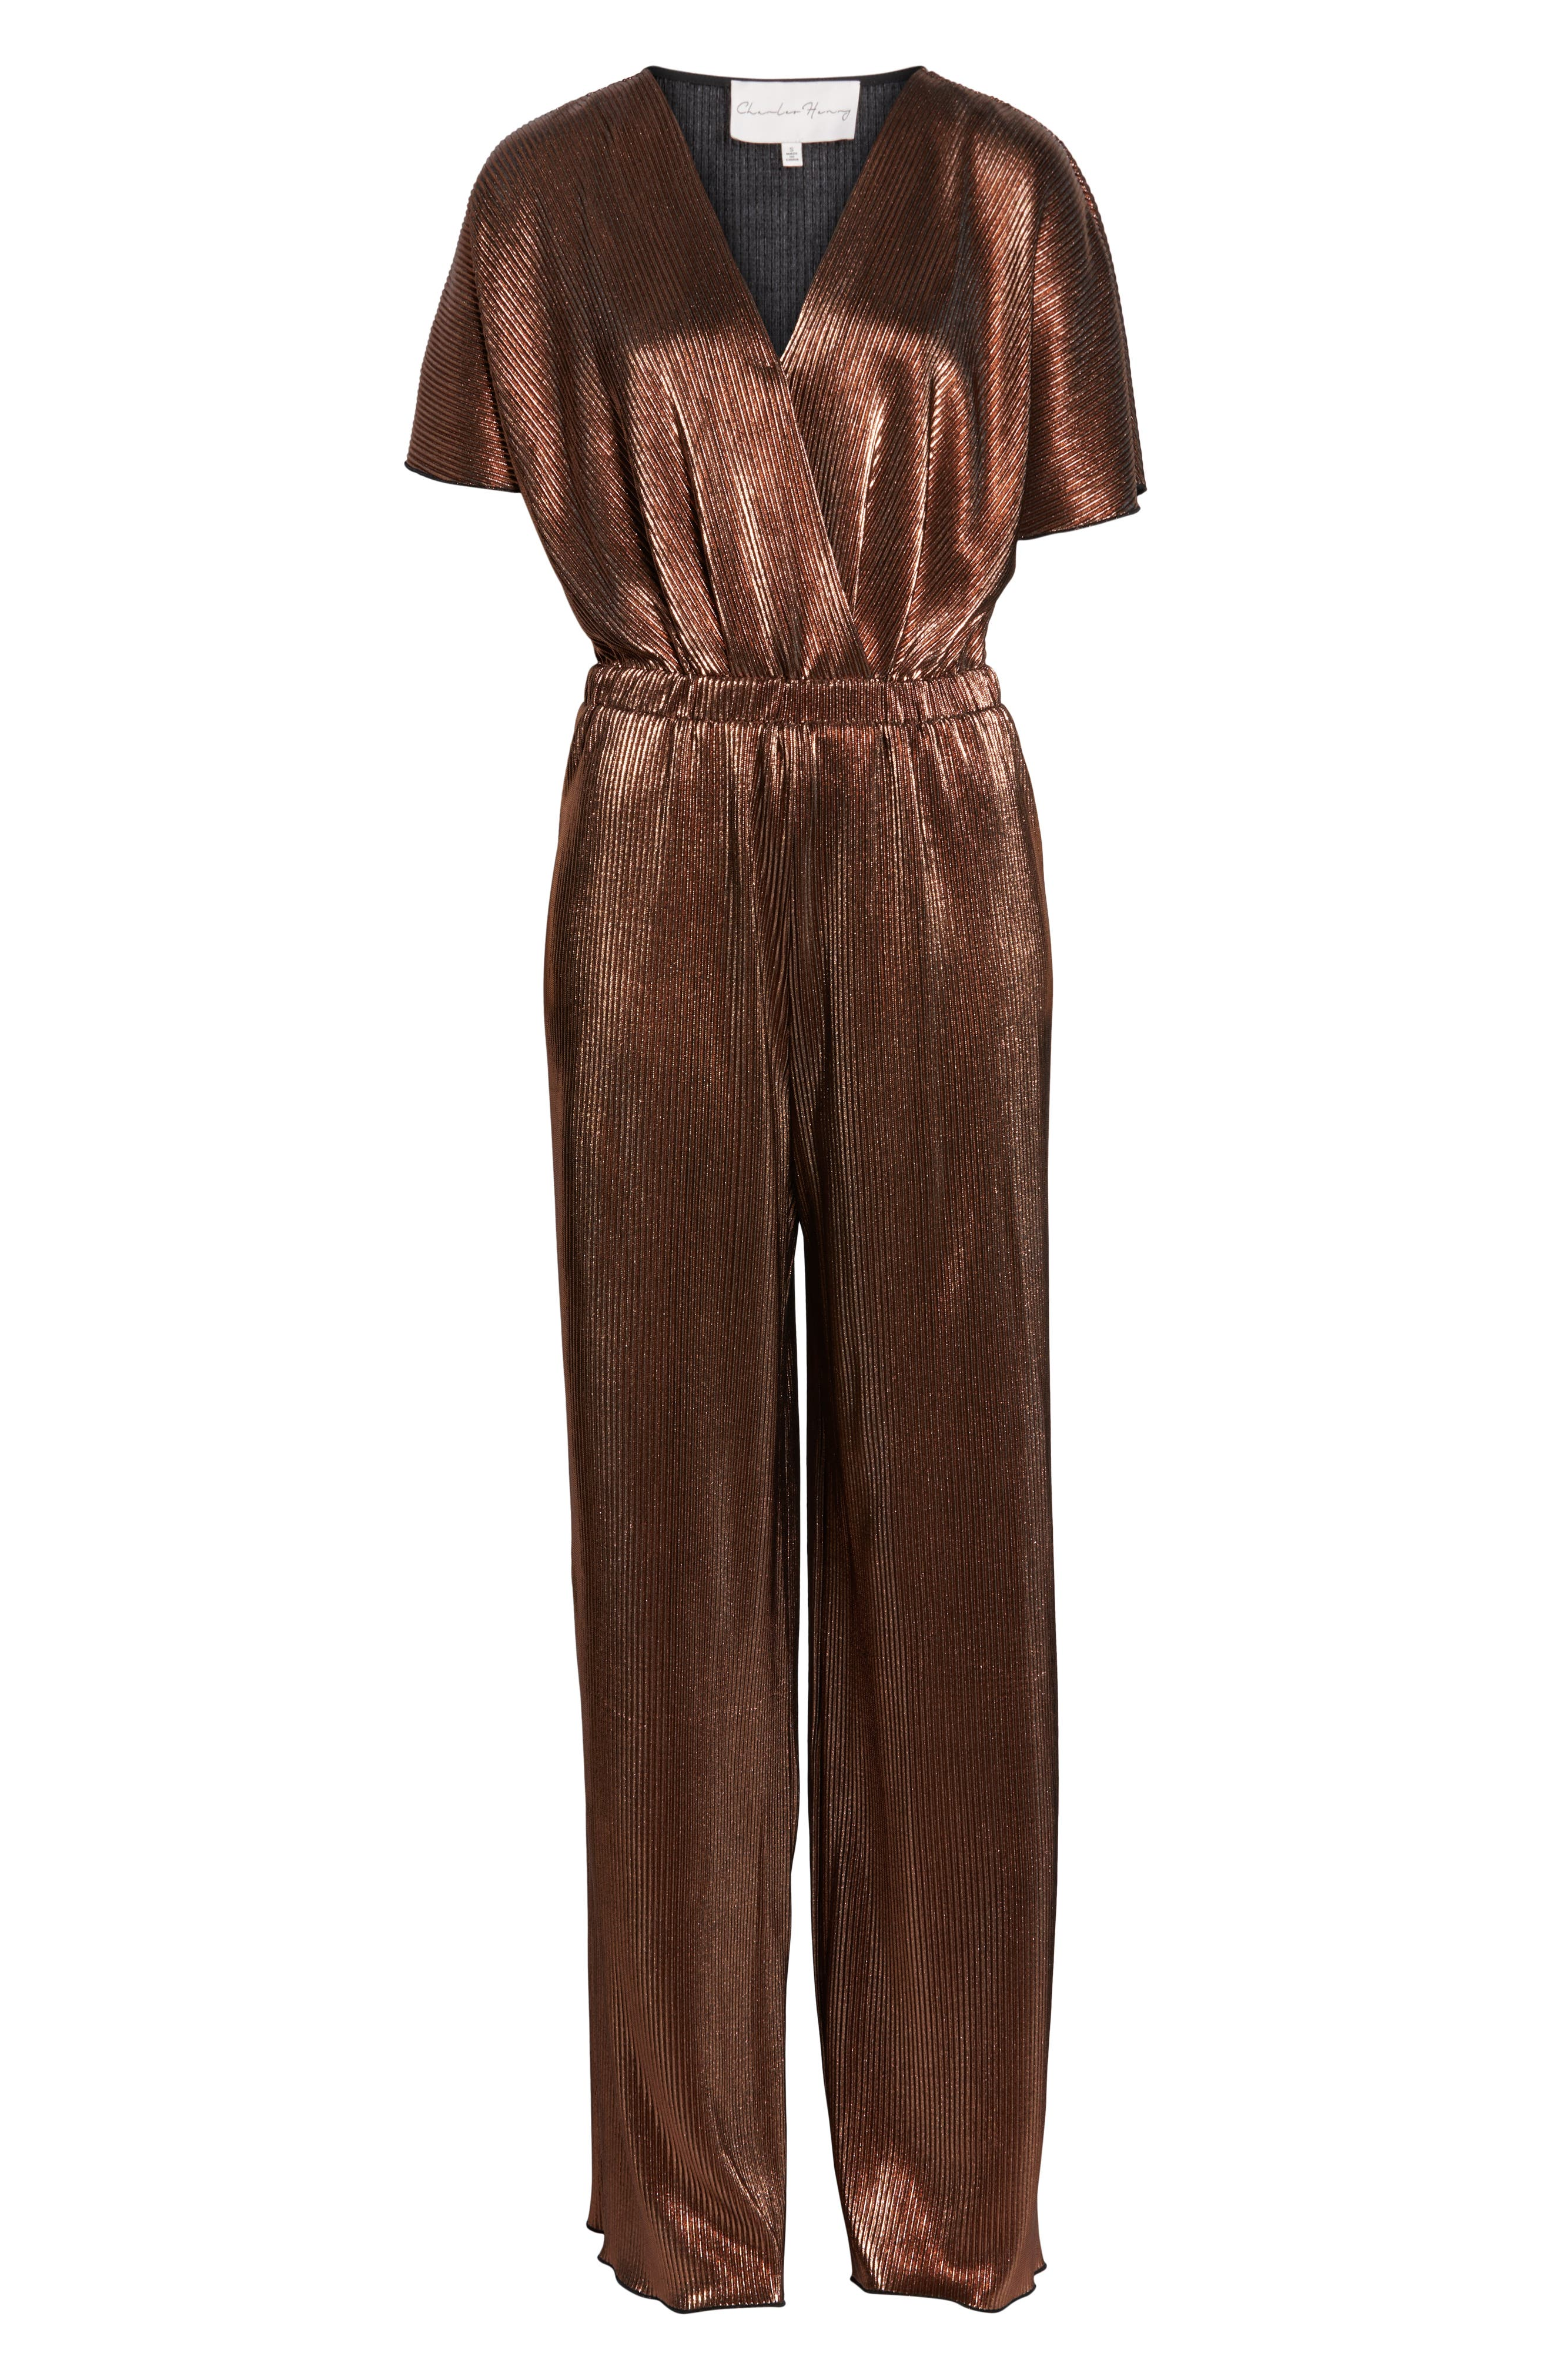 CHARLES HENRY, Crossover Jumpsuit, Alternate thumbnail 7, color, 220